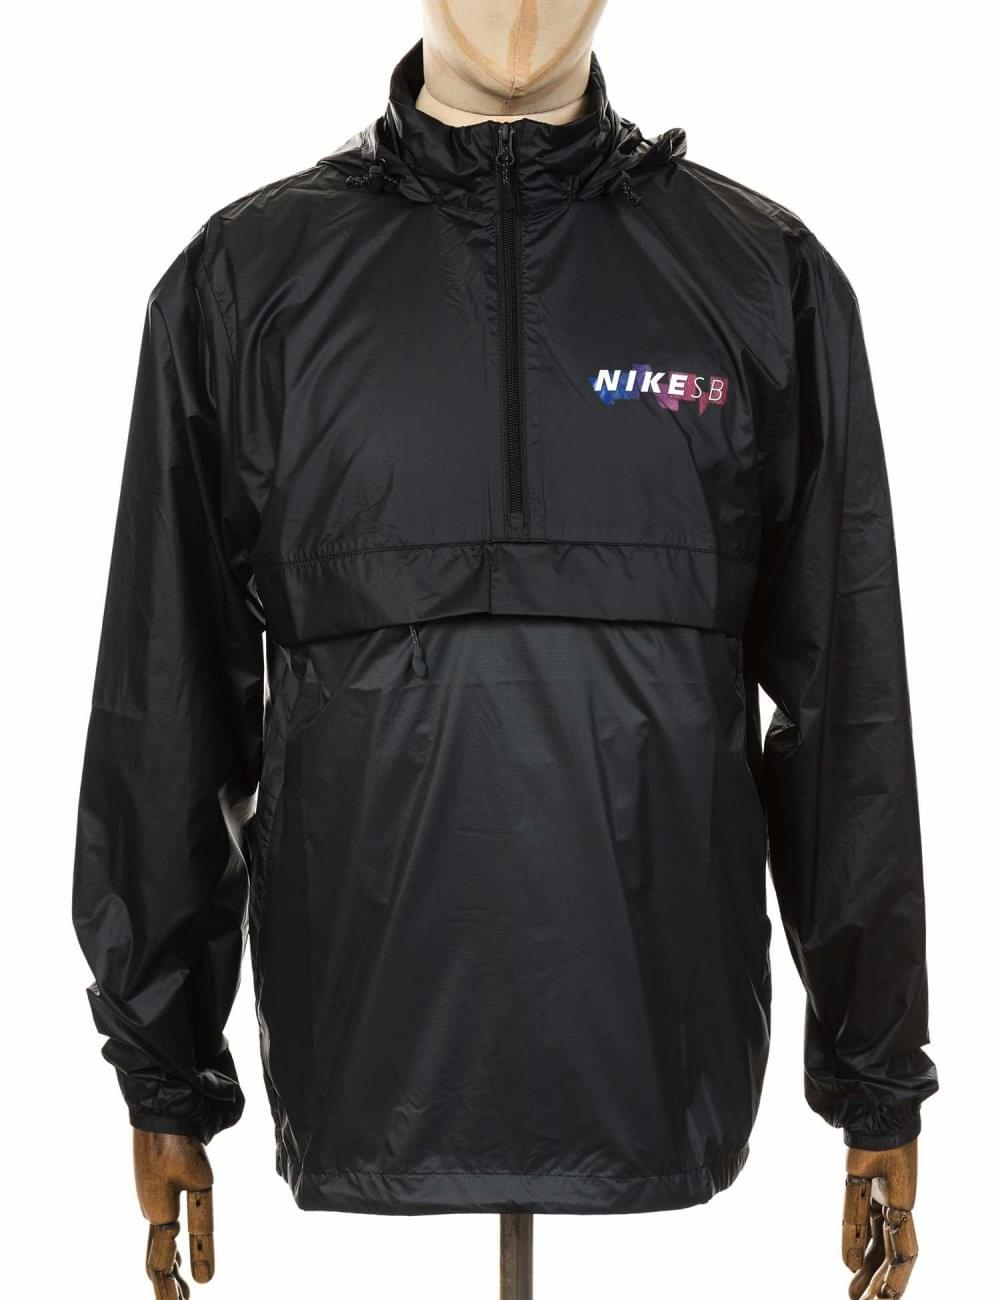 0321913e Nike SB Anorak Packable Jacket - Black/Anthracite - Clothing from ...